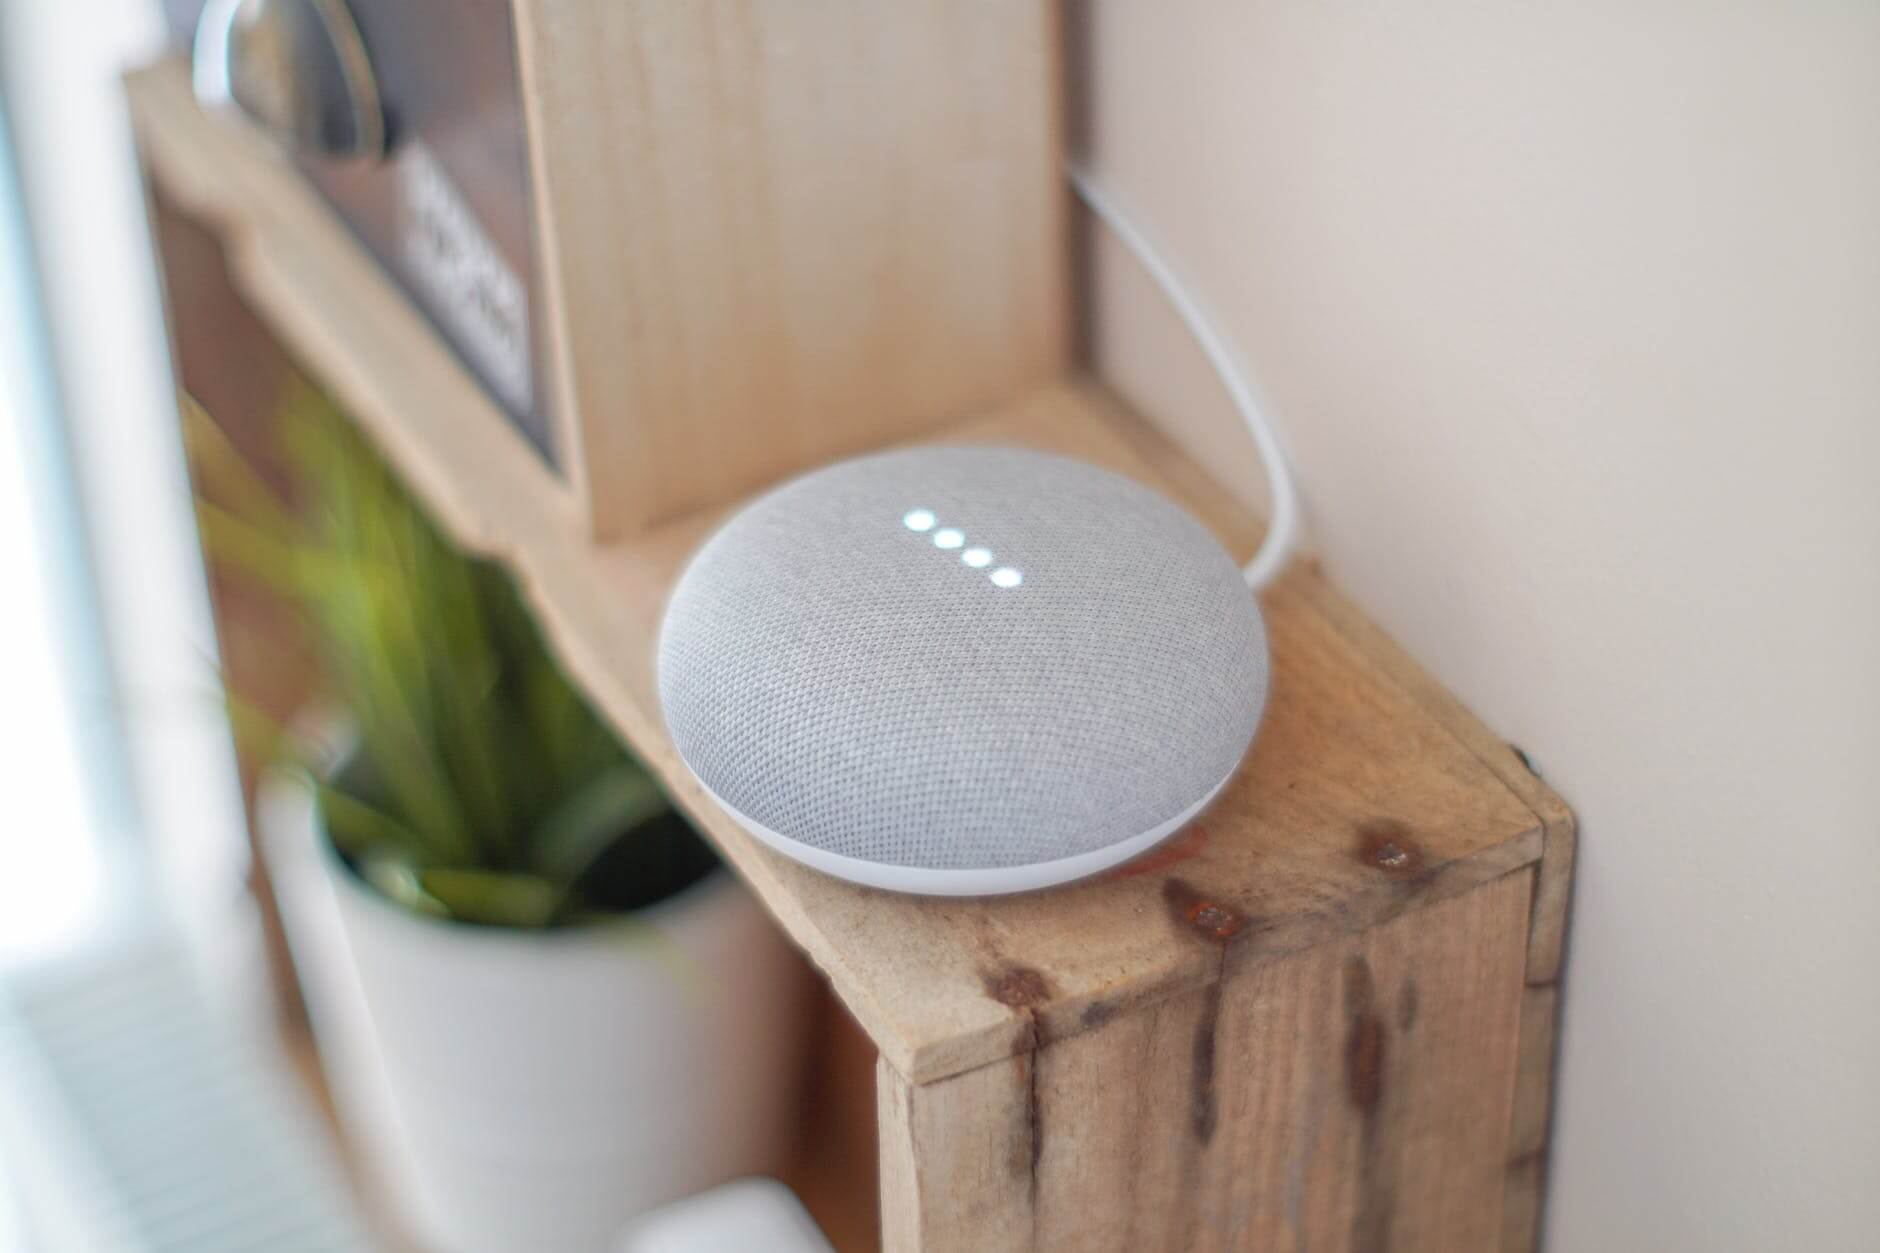 How A Good UI/UX Design Agency Streamlines Information Architecture for Voice-enabled Devices